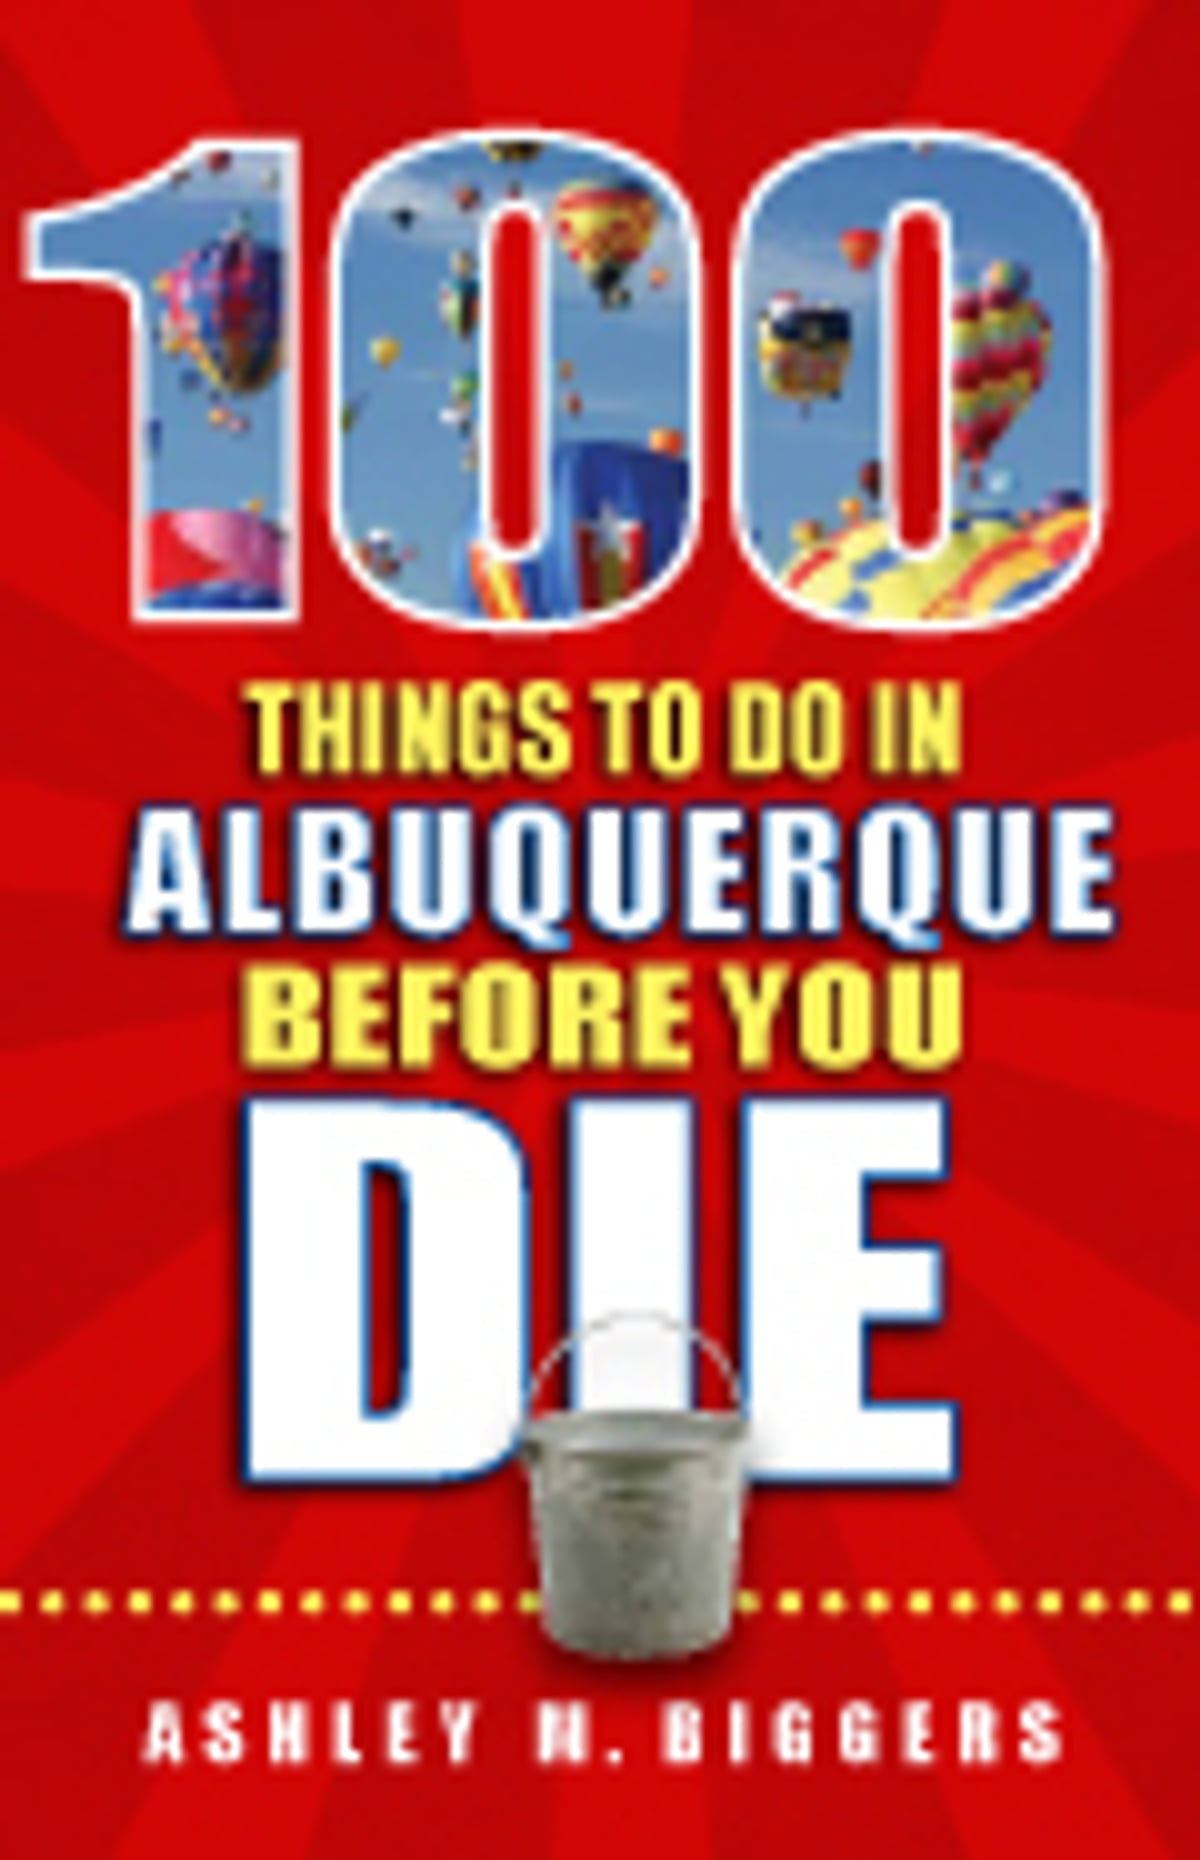 100 Things to Do in Albuquerque Before You Die eBook by Ashley M. Biggers -  1230000542128 | Rakuten Kobo